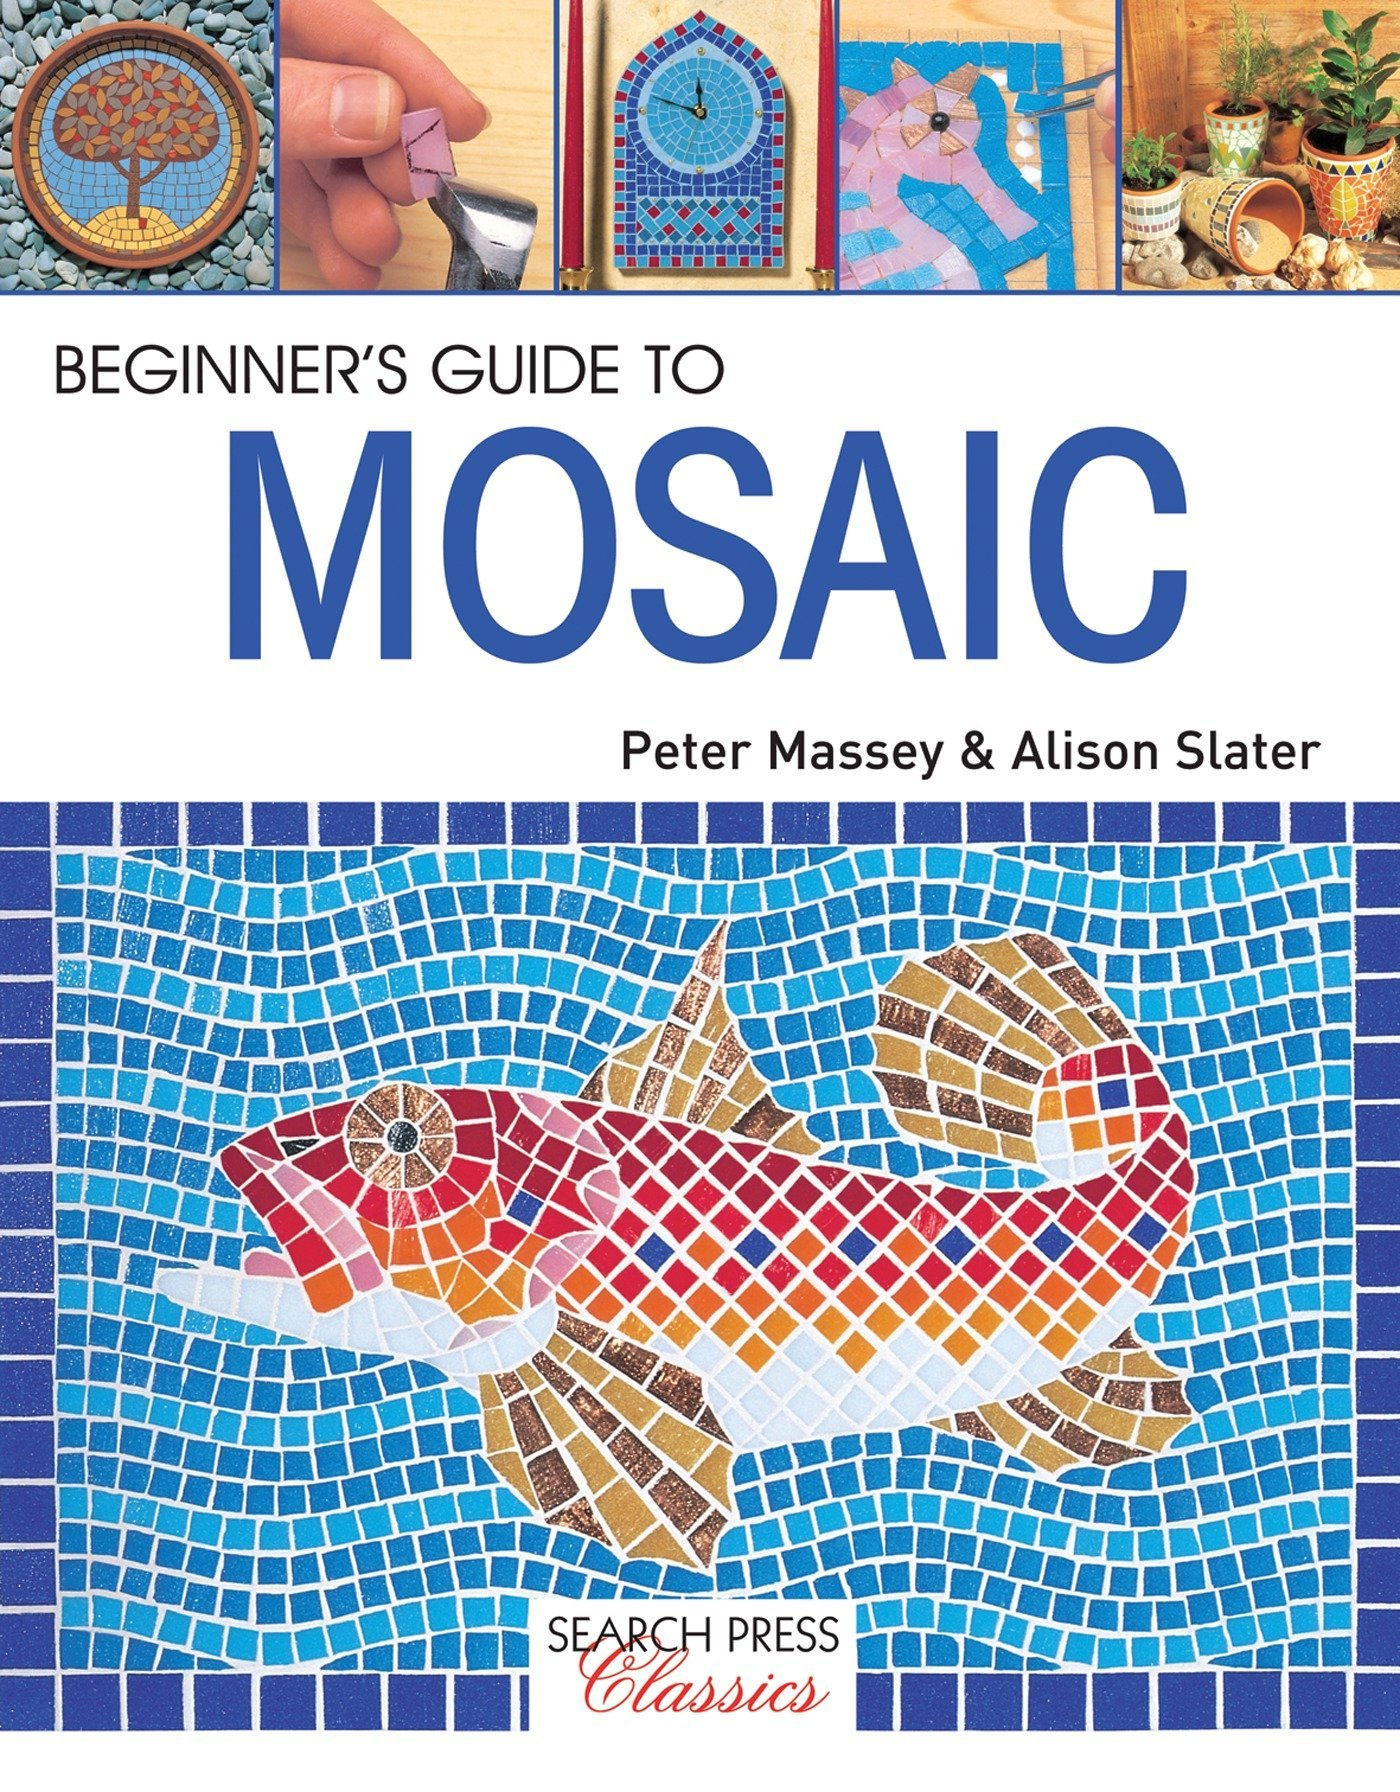 Beginner's Guide to Mosaic (Search Press Classics)